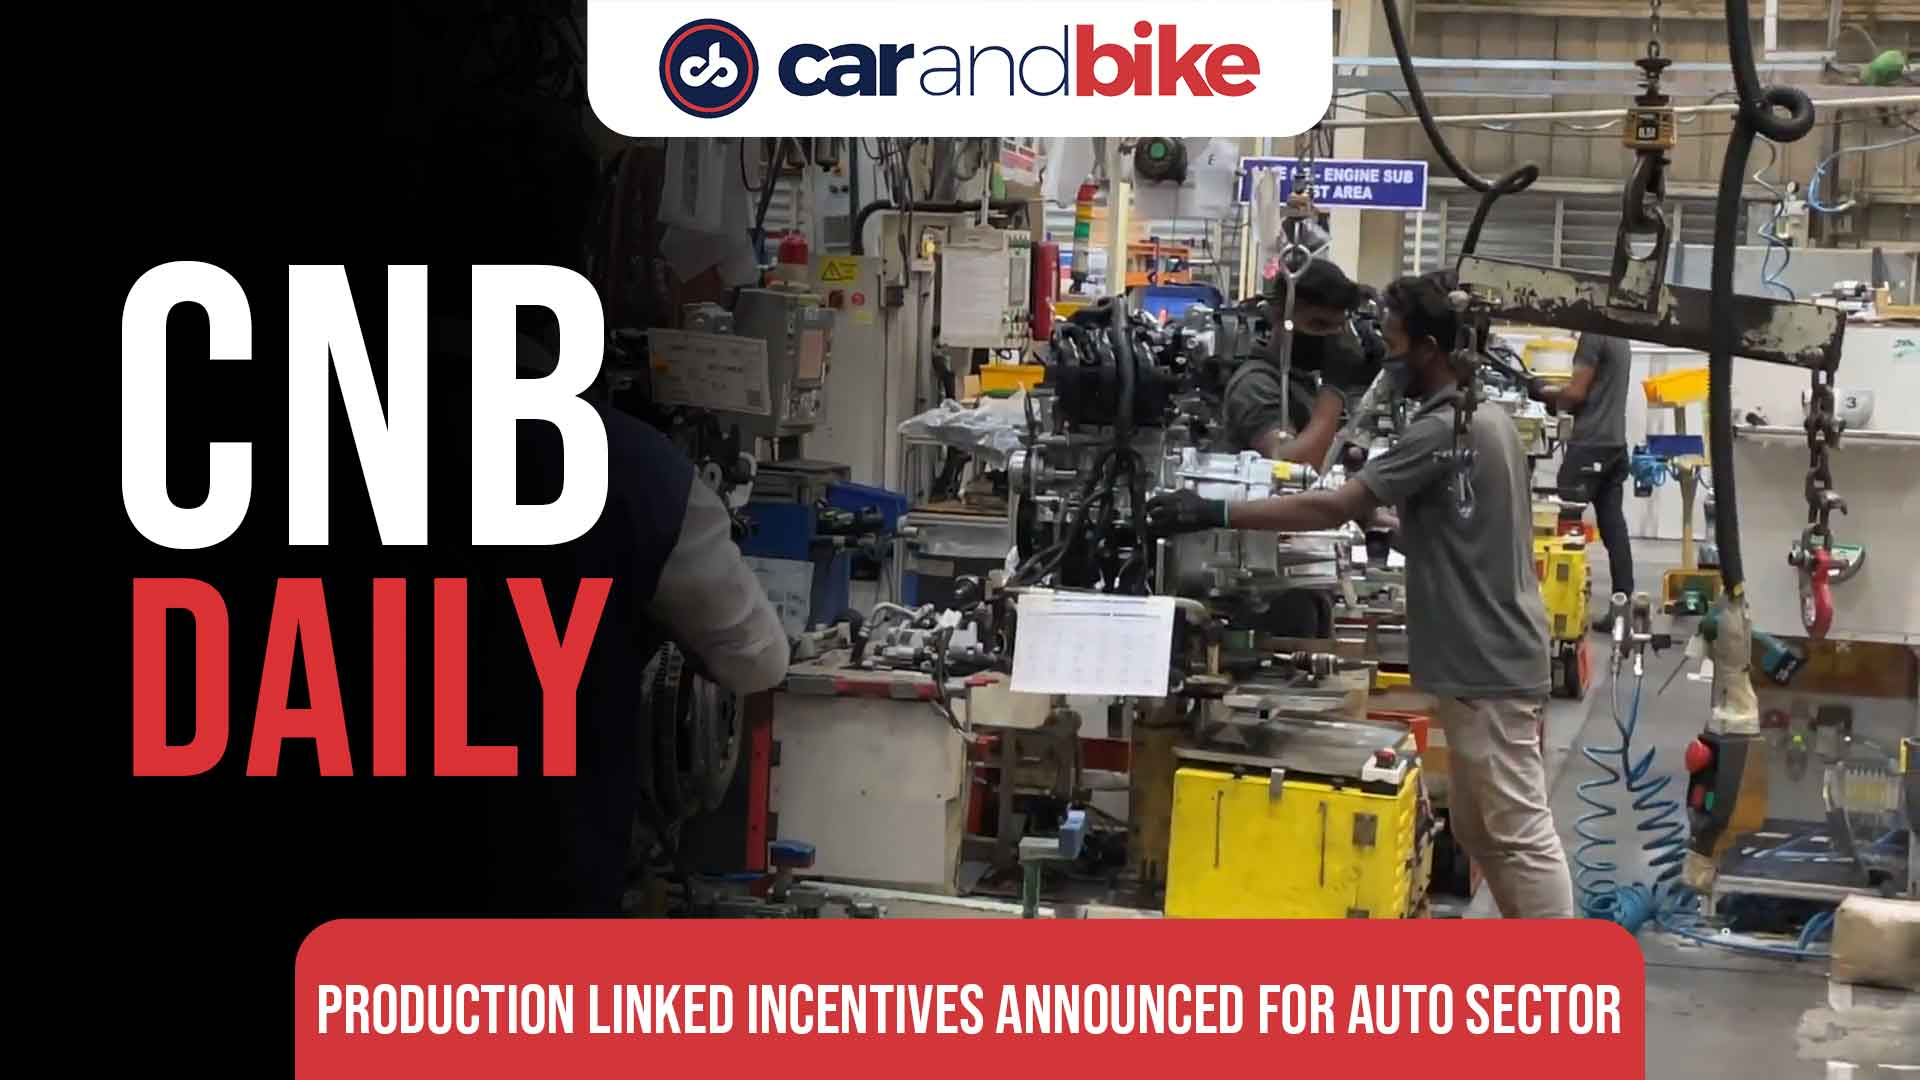 Production linked incentives announced for auto sector